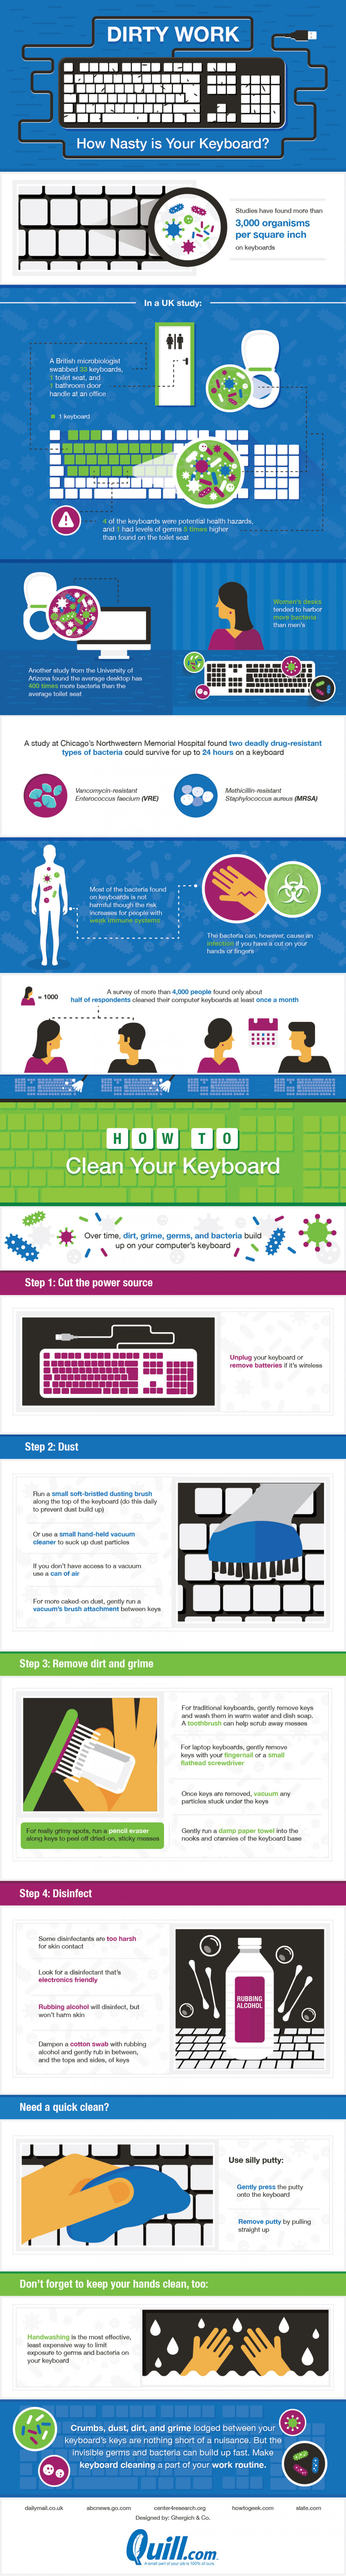 Dirty Work: How Nasty is Your Keyboard? Infographic